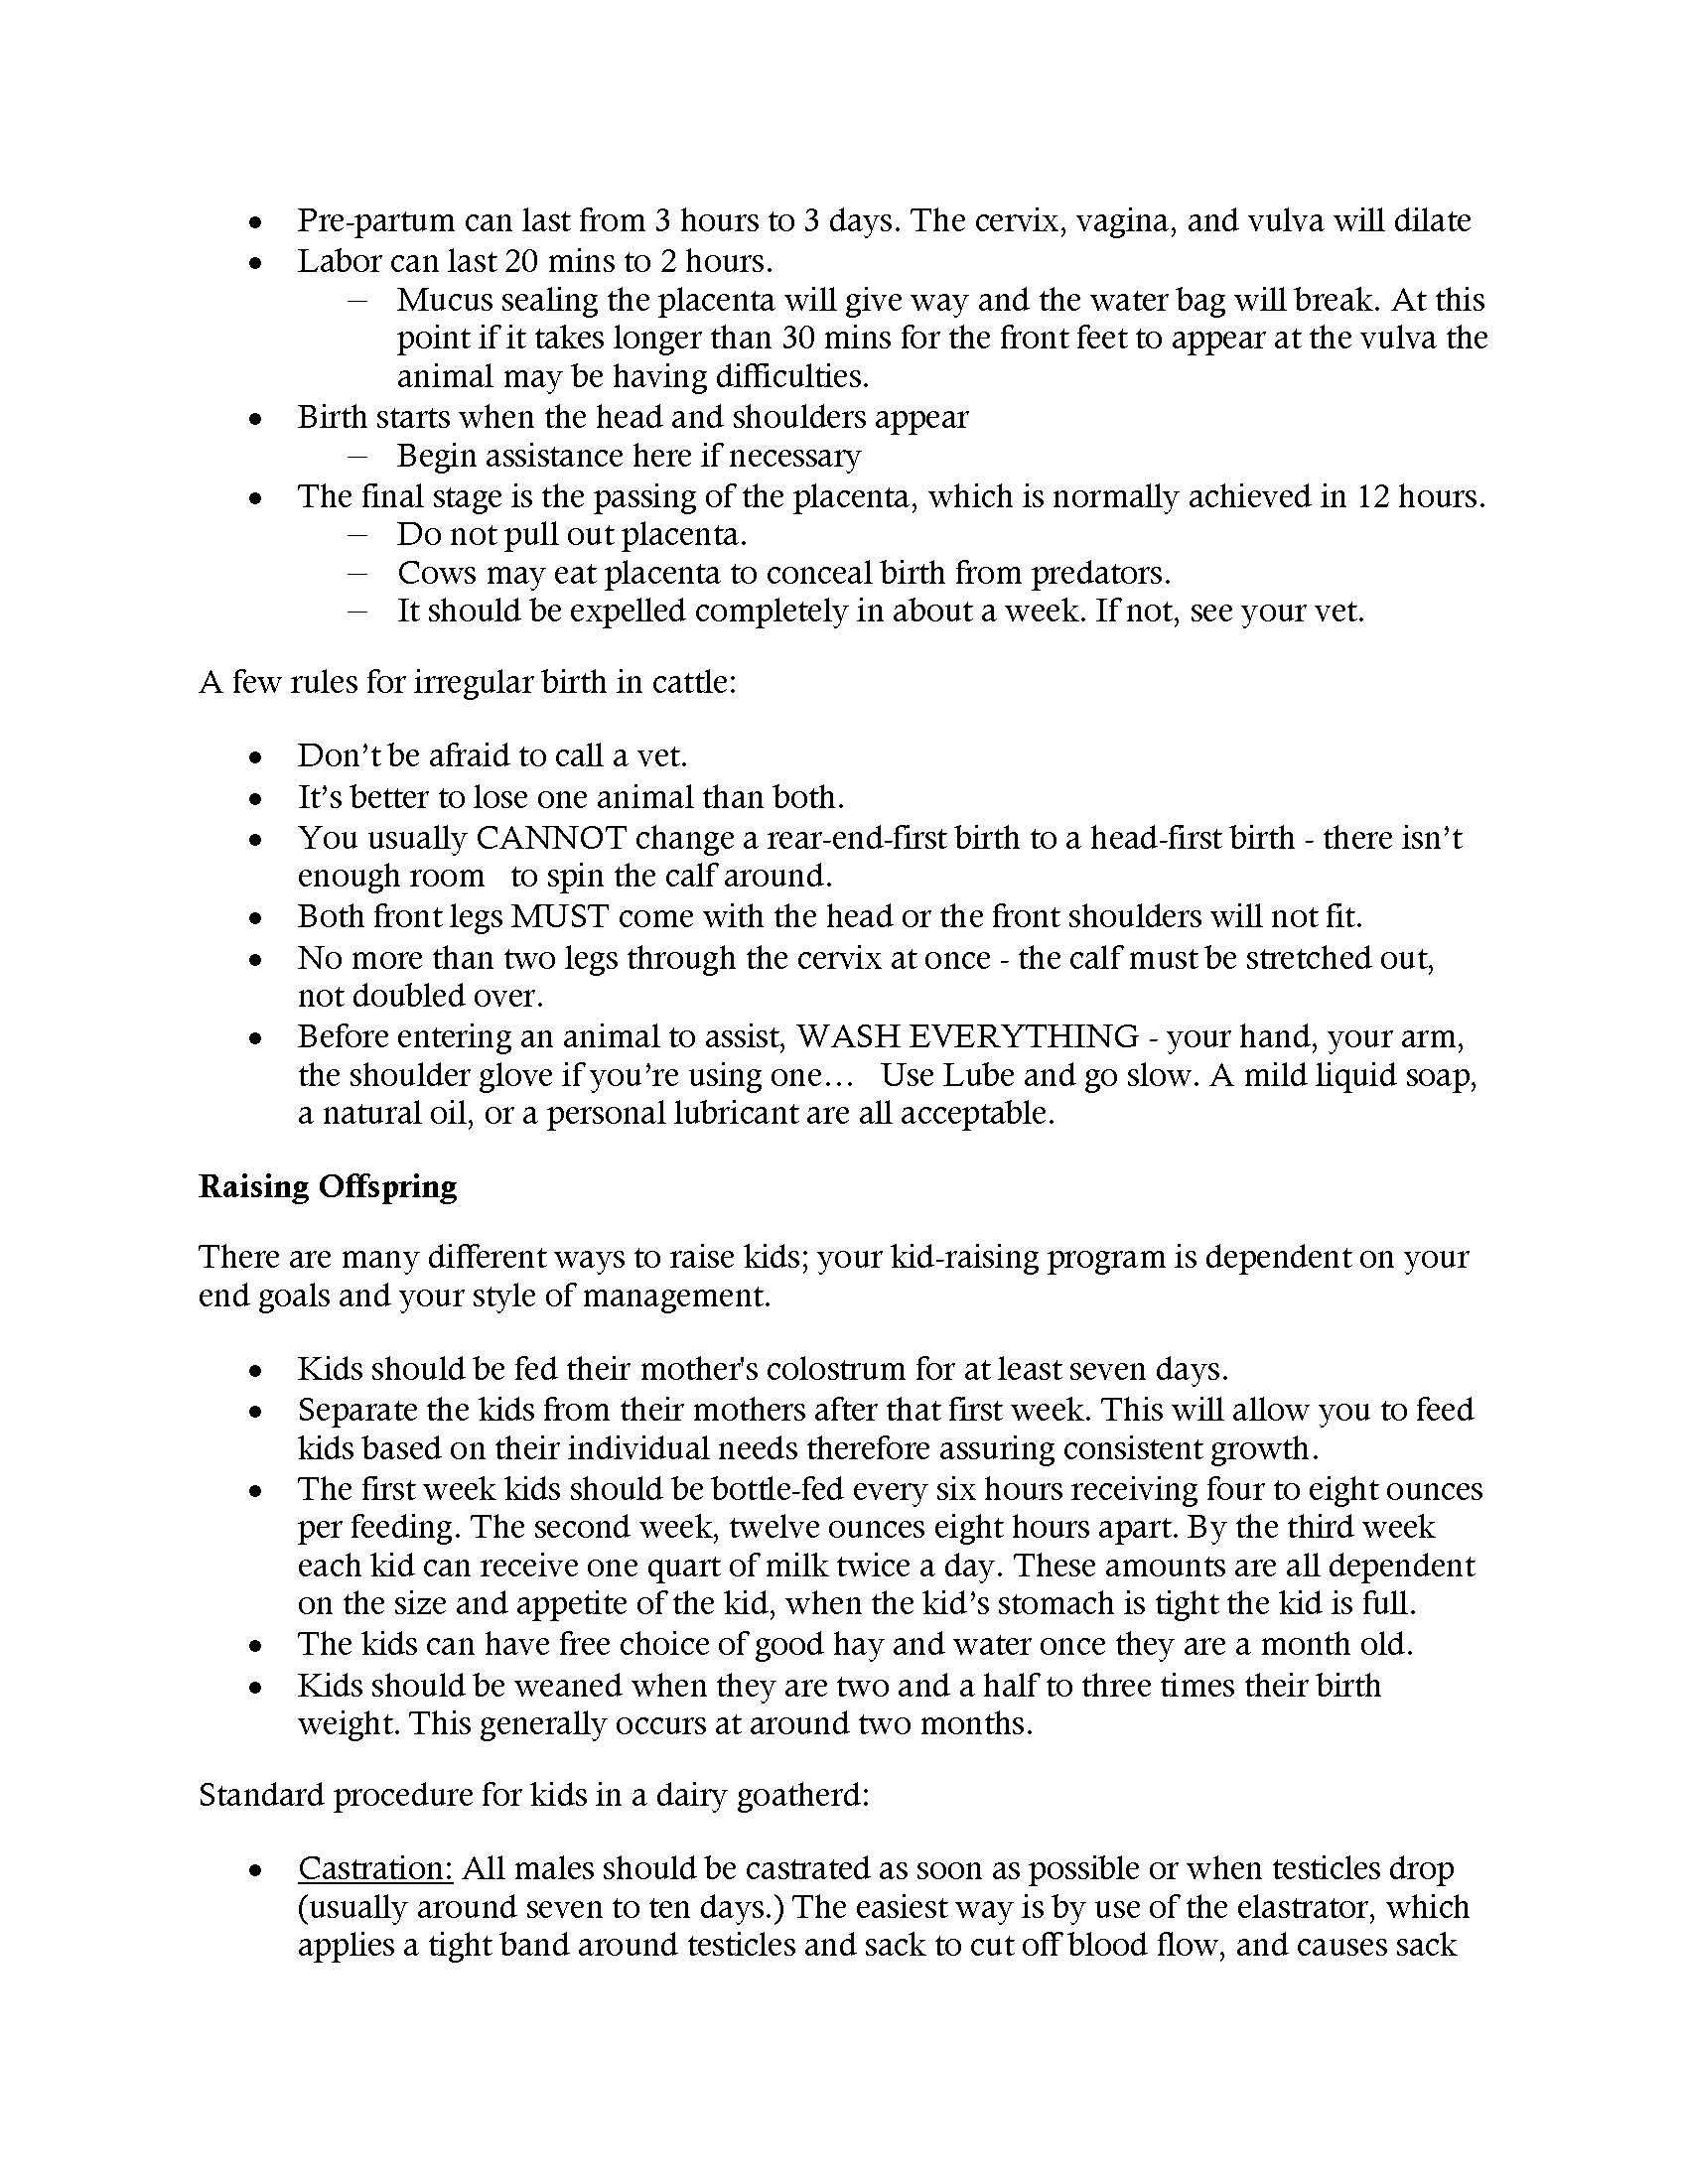 RFC Class Outlines_Page_04.jpg